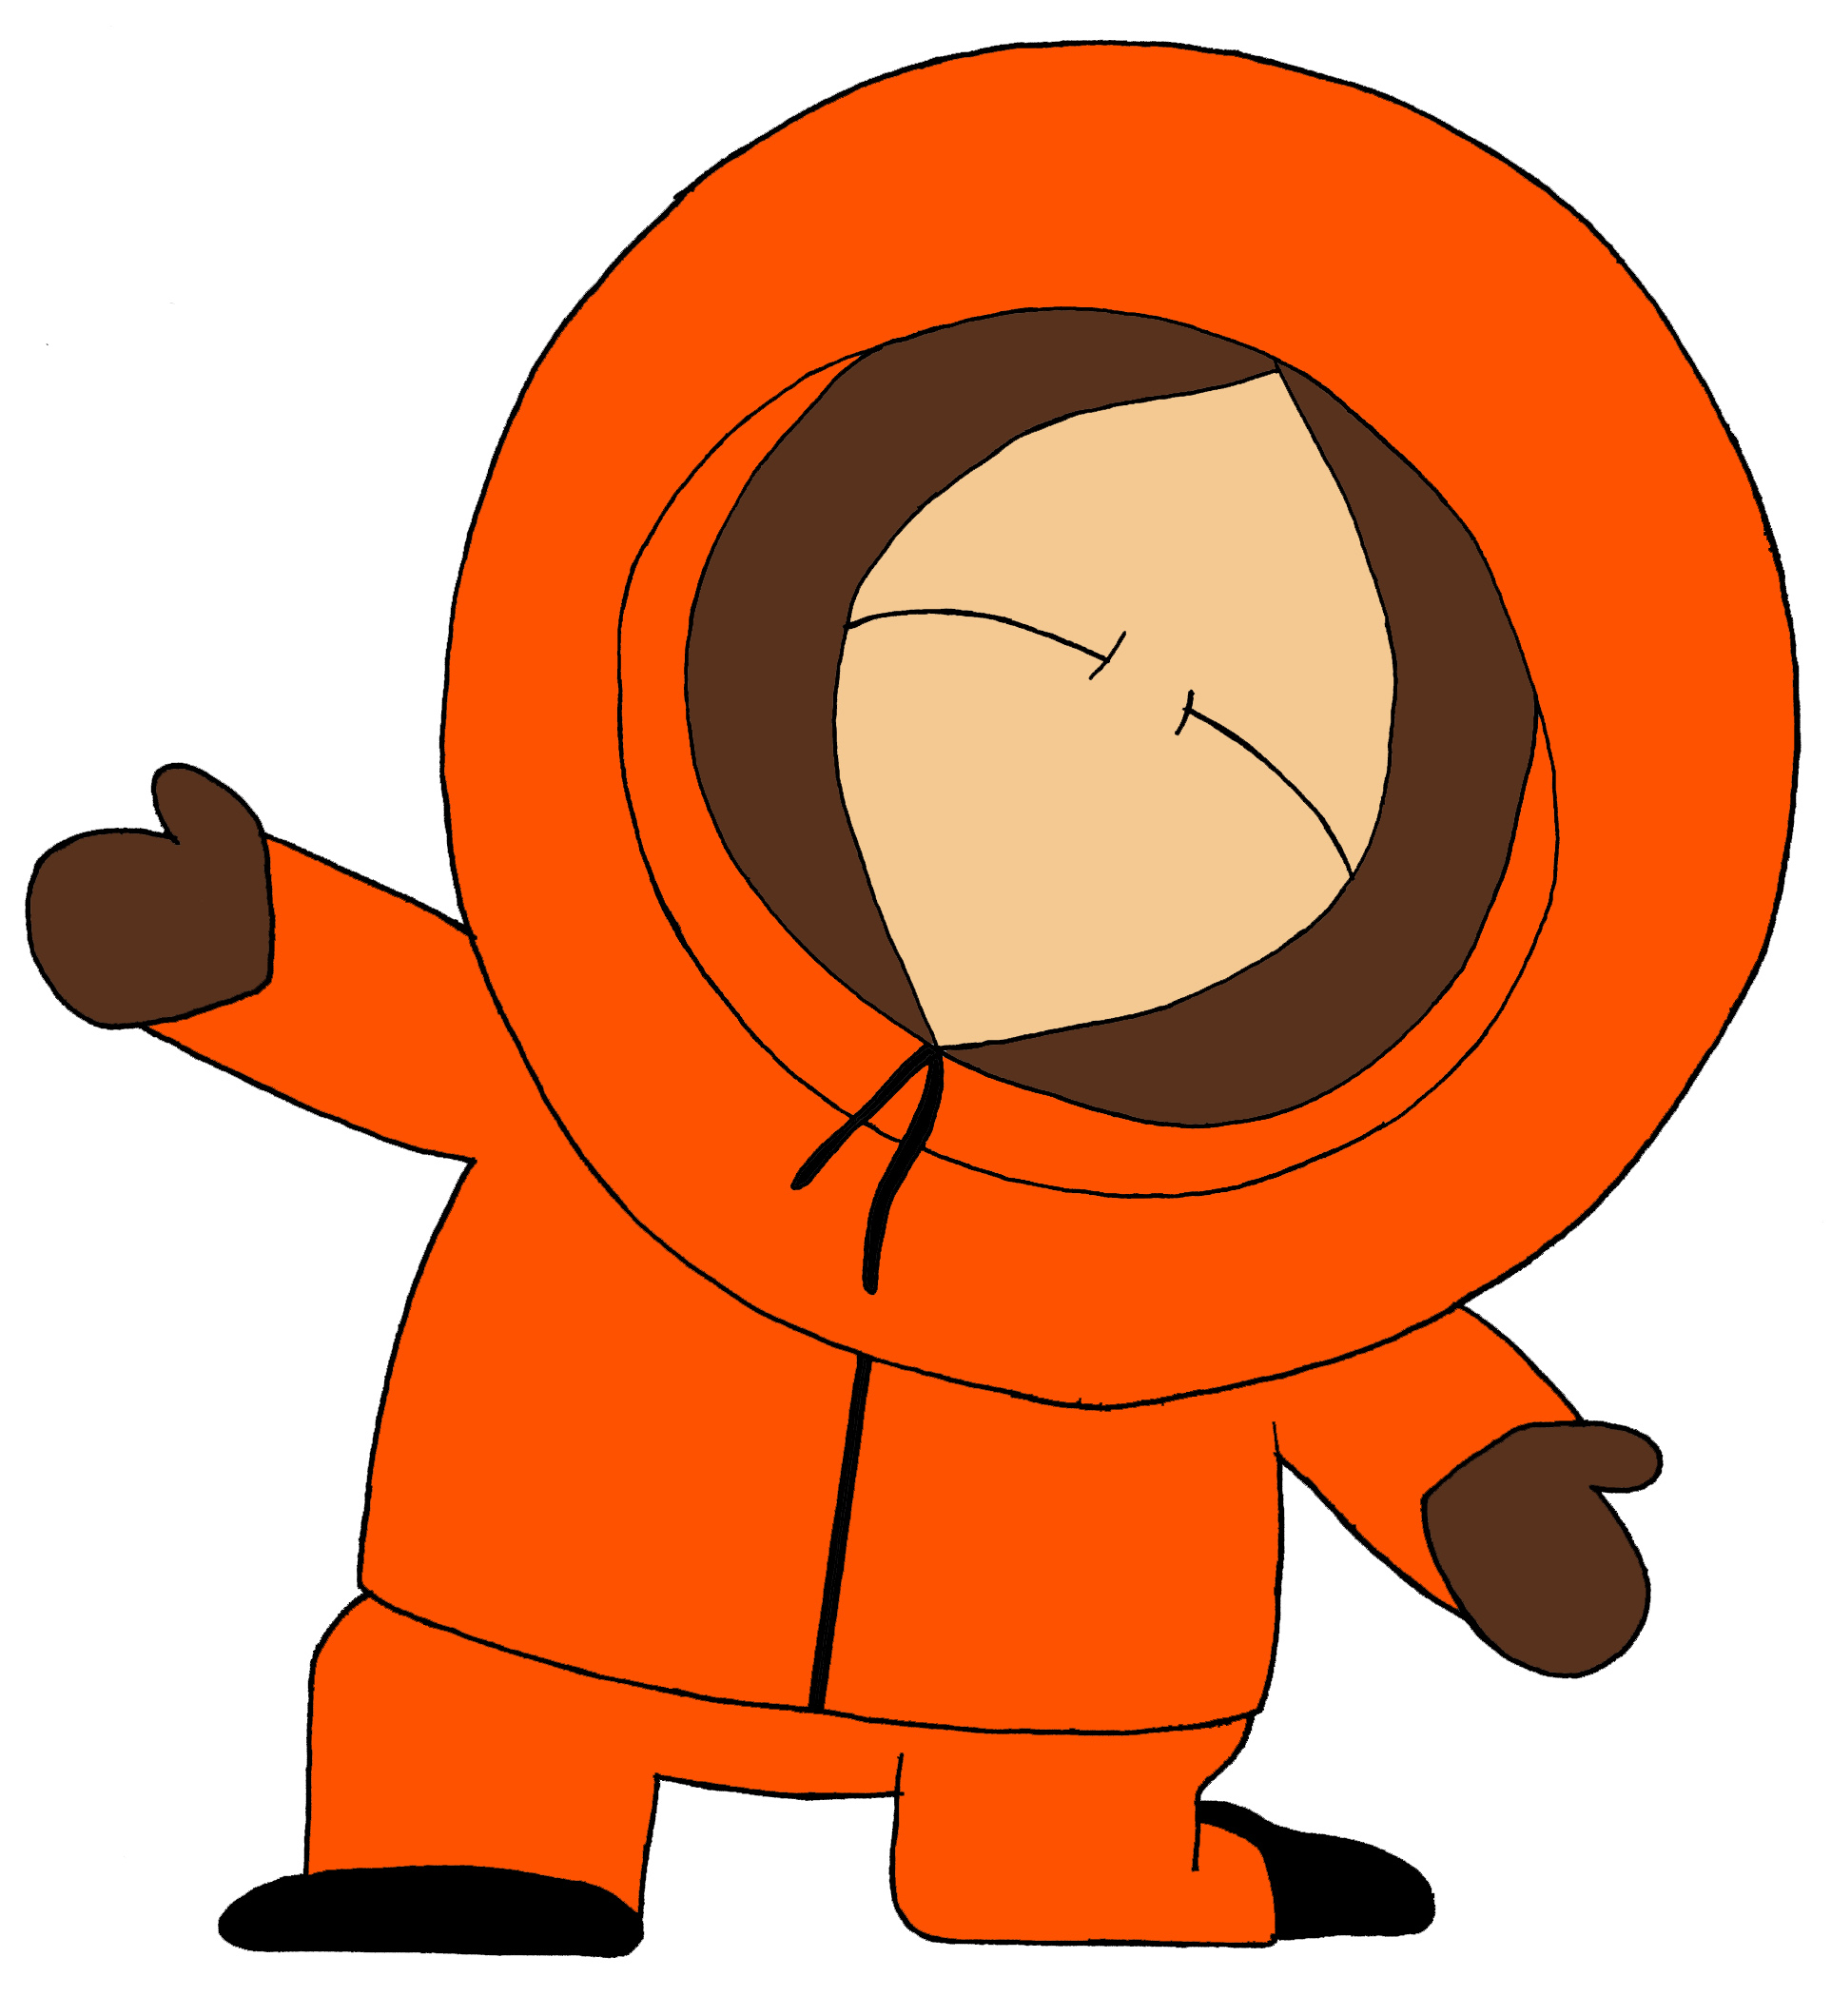 Image south park action poses kenny 13 by megasupermoon the parody wiki fandom - Pics of kenny from south park ...